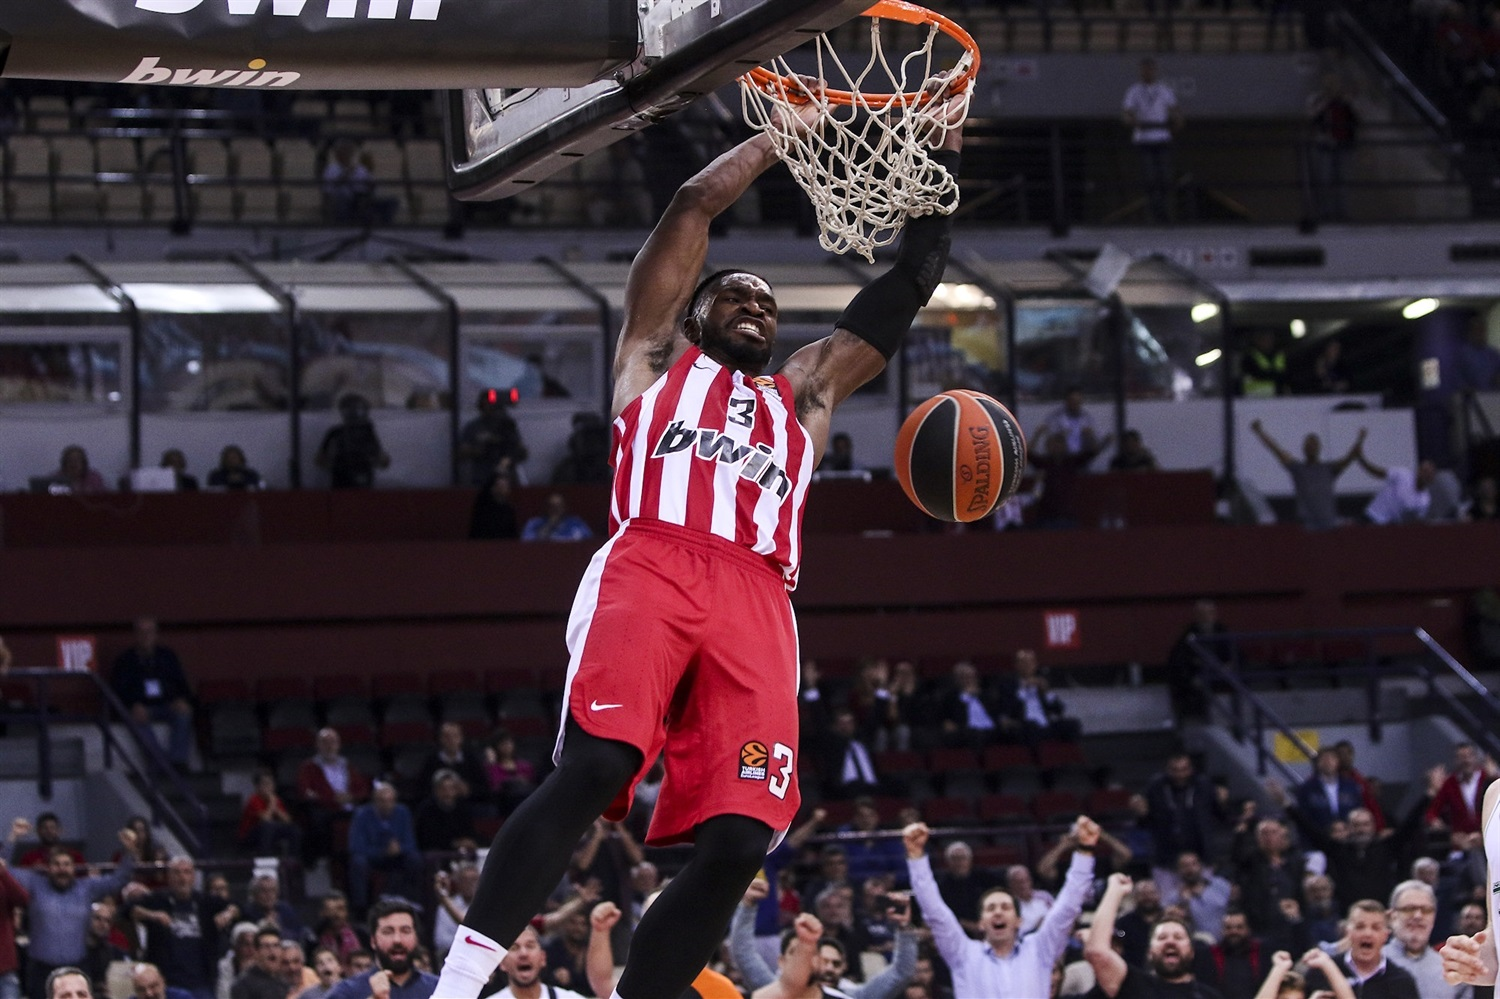 Brandon Paul - Olympiacos Piraeus - EB19